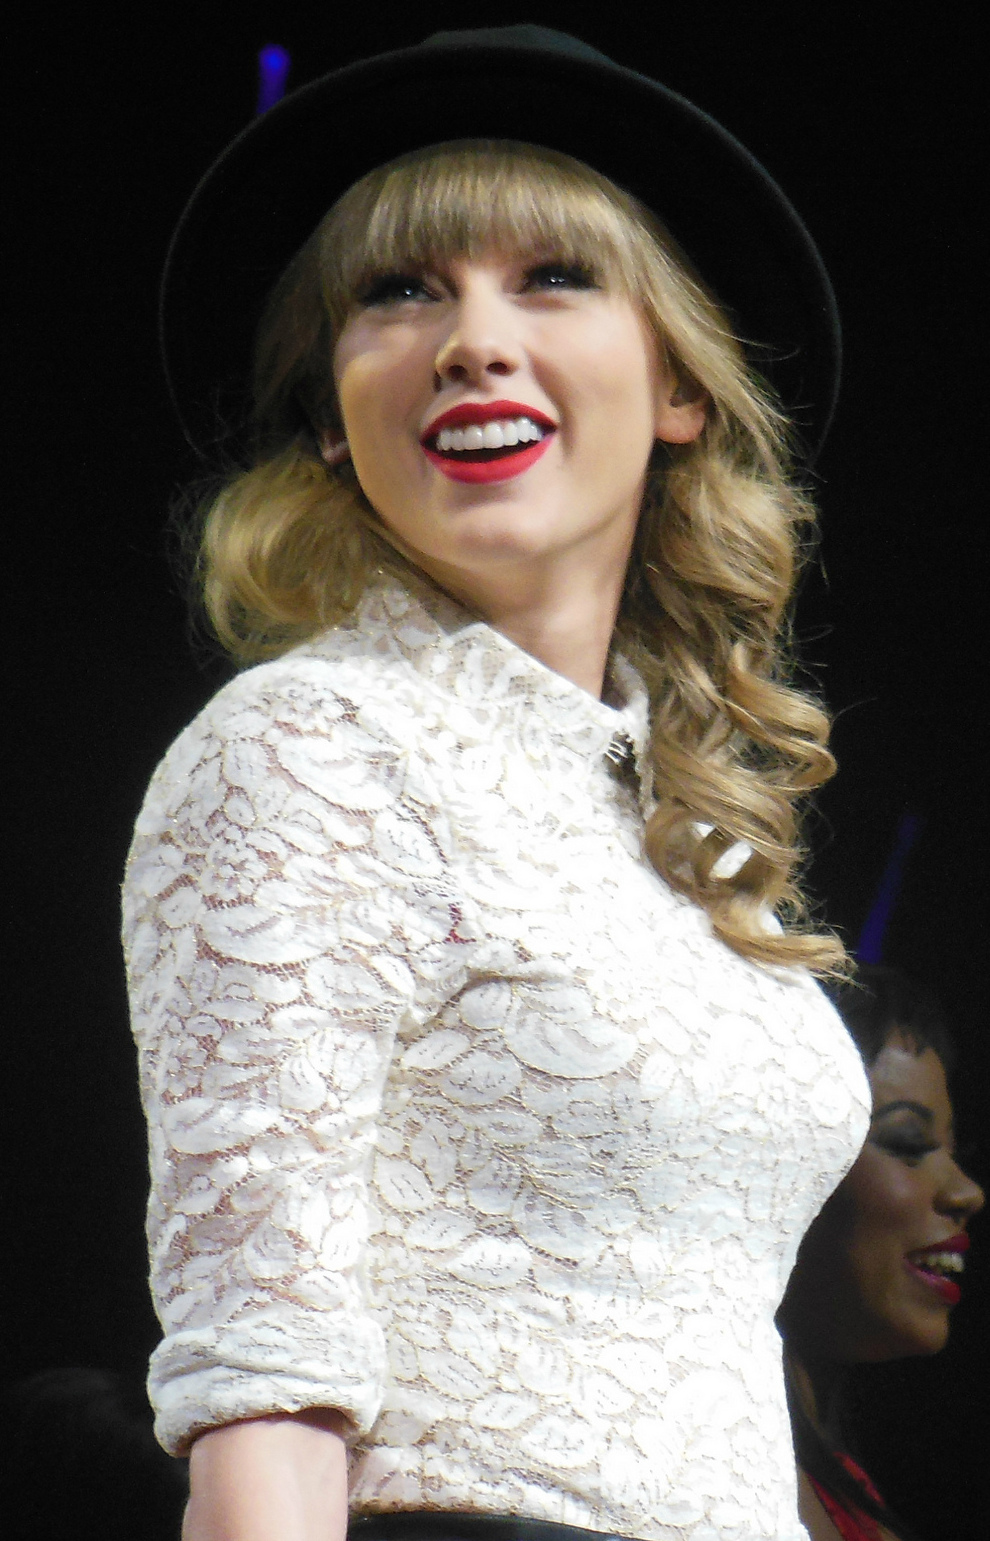 File:Taylor Swift Red Tour 2, 2013.jpg - Wikimedia Commons